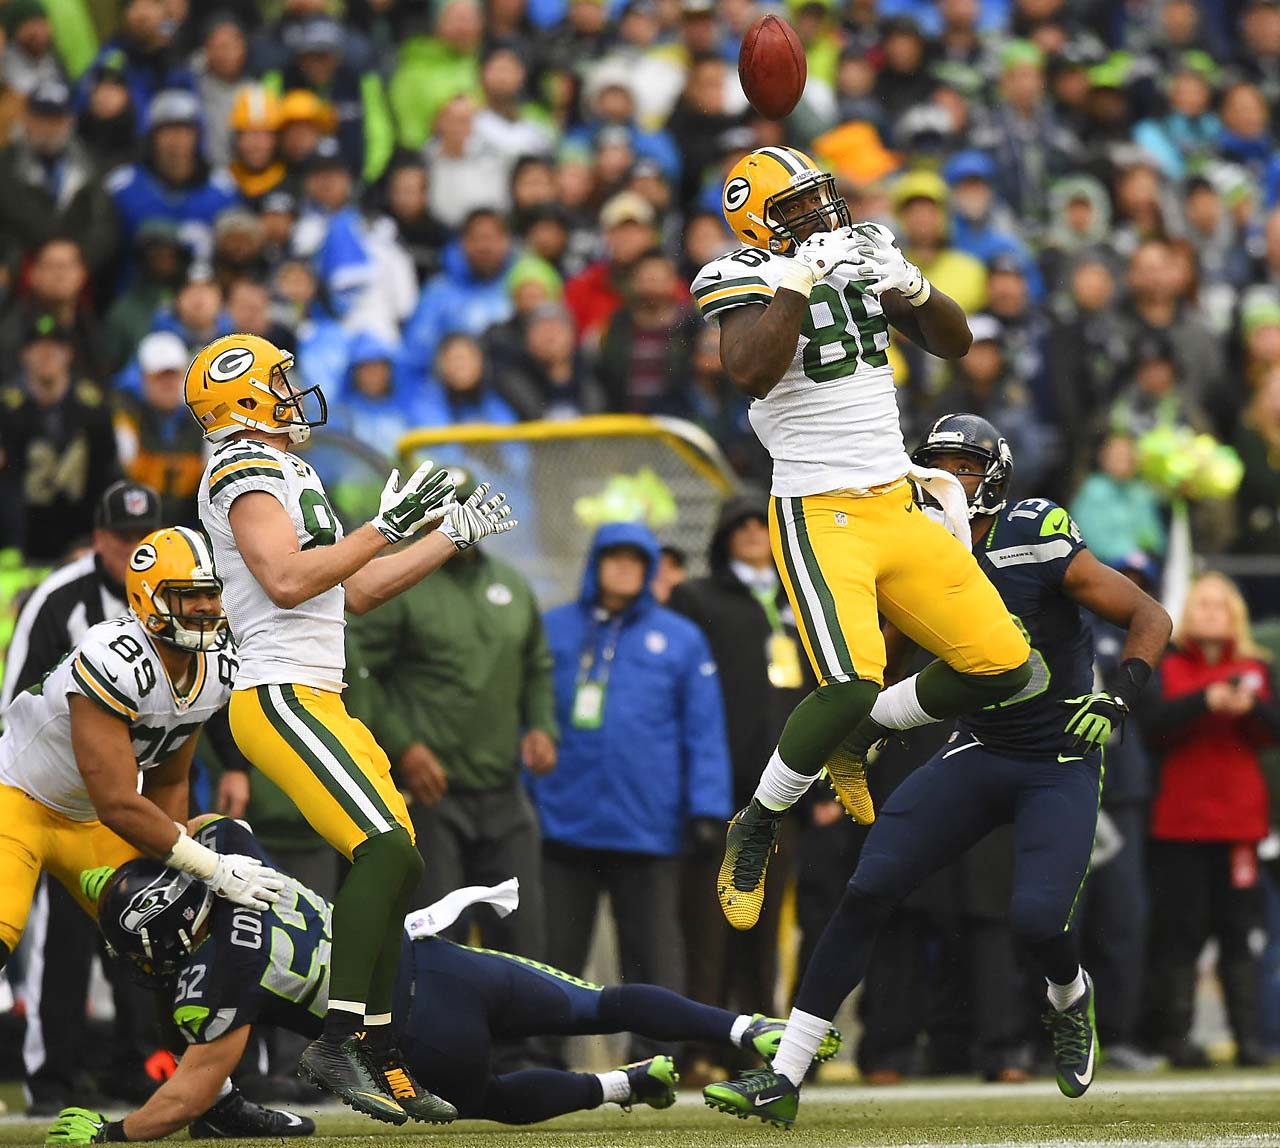 Of all the Packers miscues, the one that stood out the most was Brandon Bostick's failure to secure the ball on an onsides kick with Green Bay leading 19-14 with 2:09 remaining.